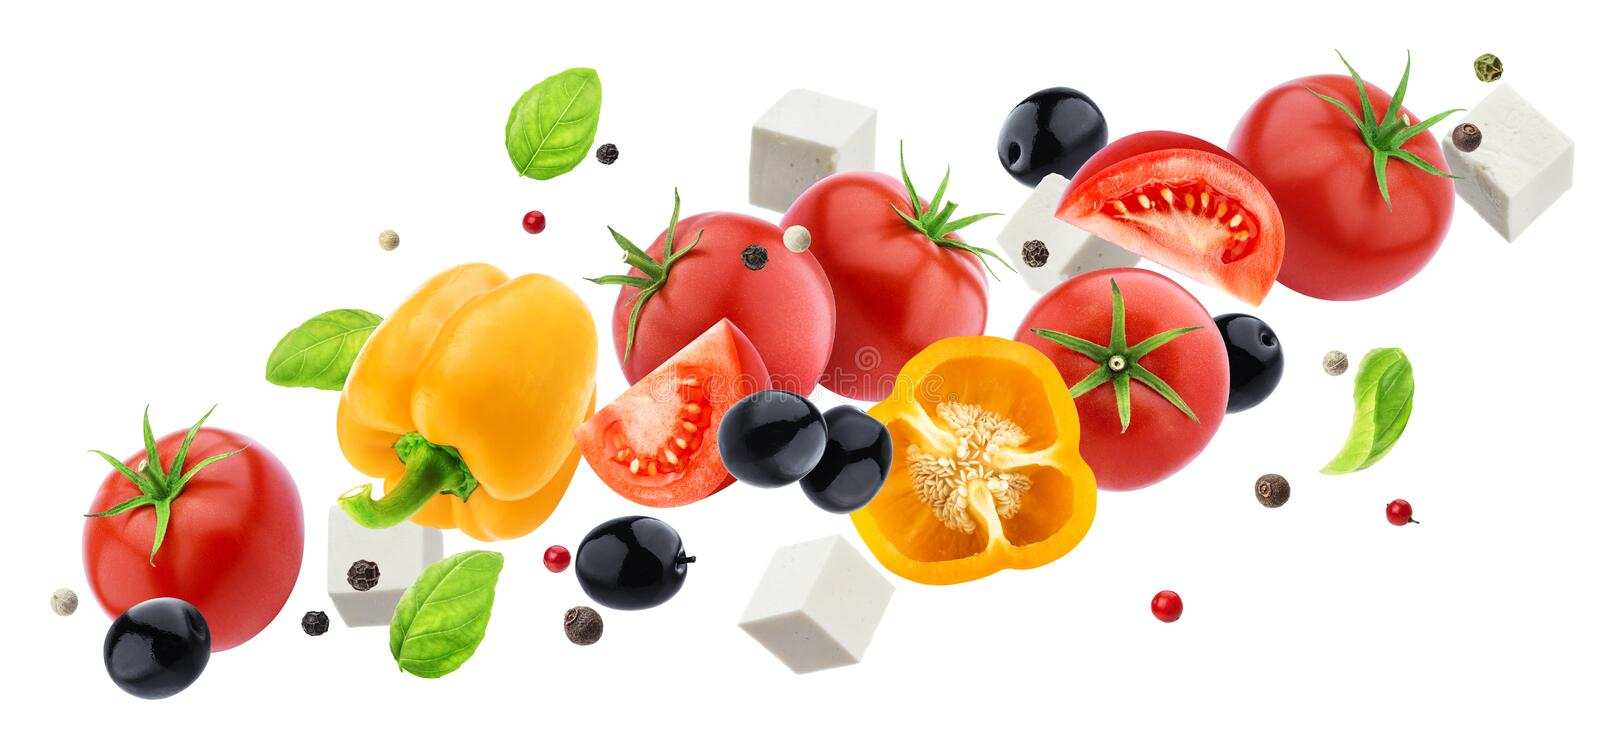 Falling greek salad isolated on white background with clipping path, flying fresh vegetable salad ingredient. S: feta cheese, tomato, cucumber, olives, basil and royalty free stock images